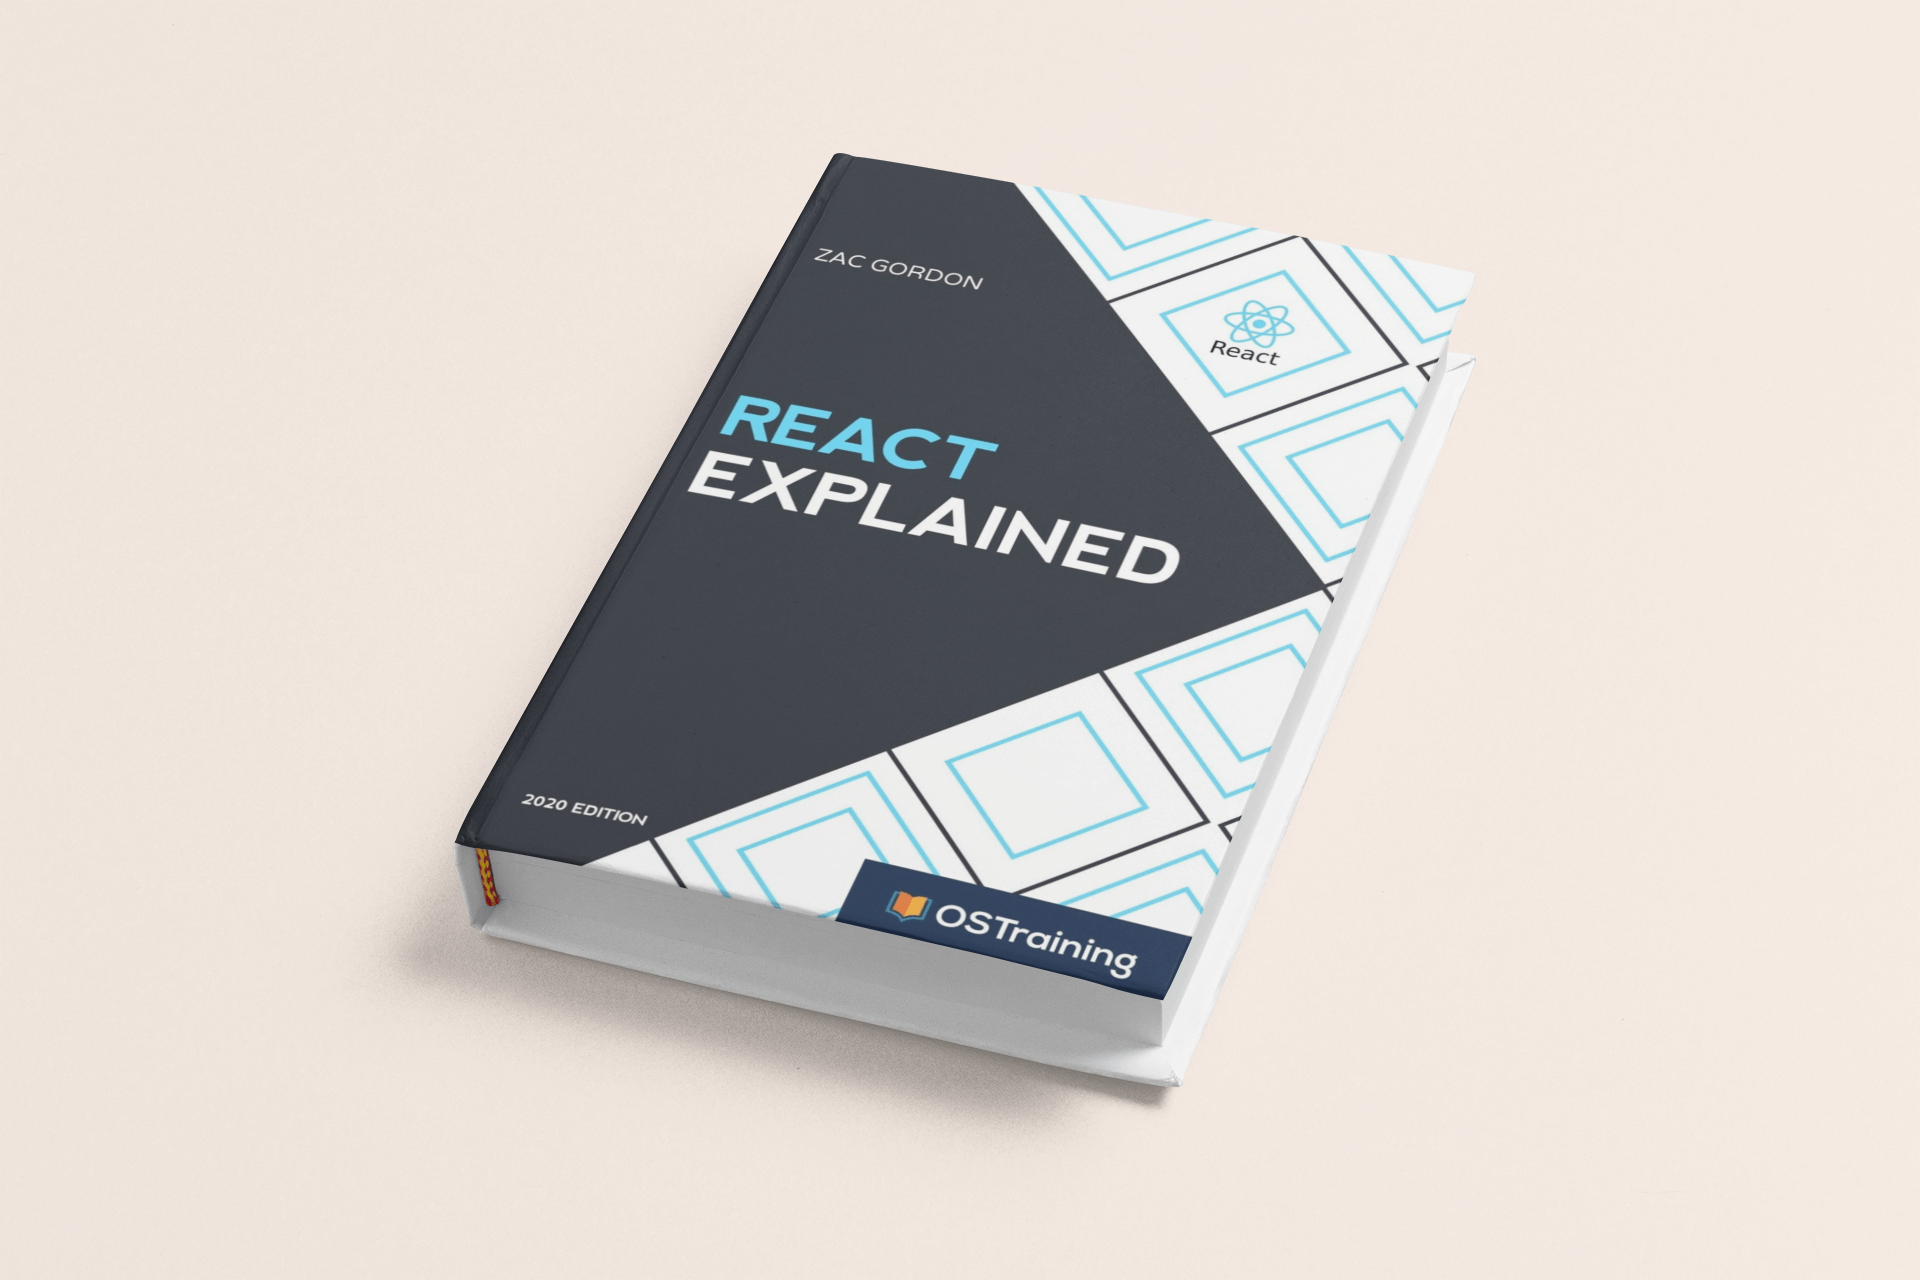 react-explained-cover-mockup.png